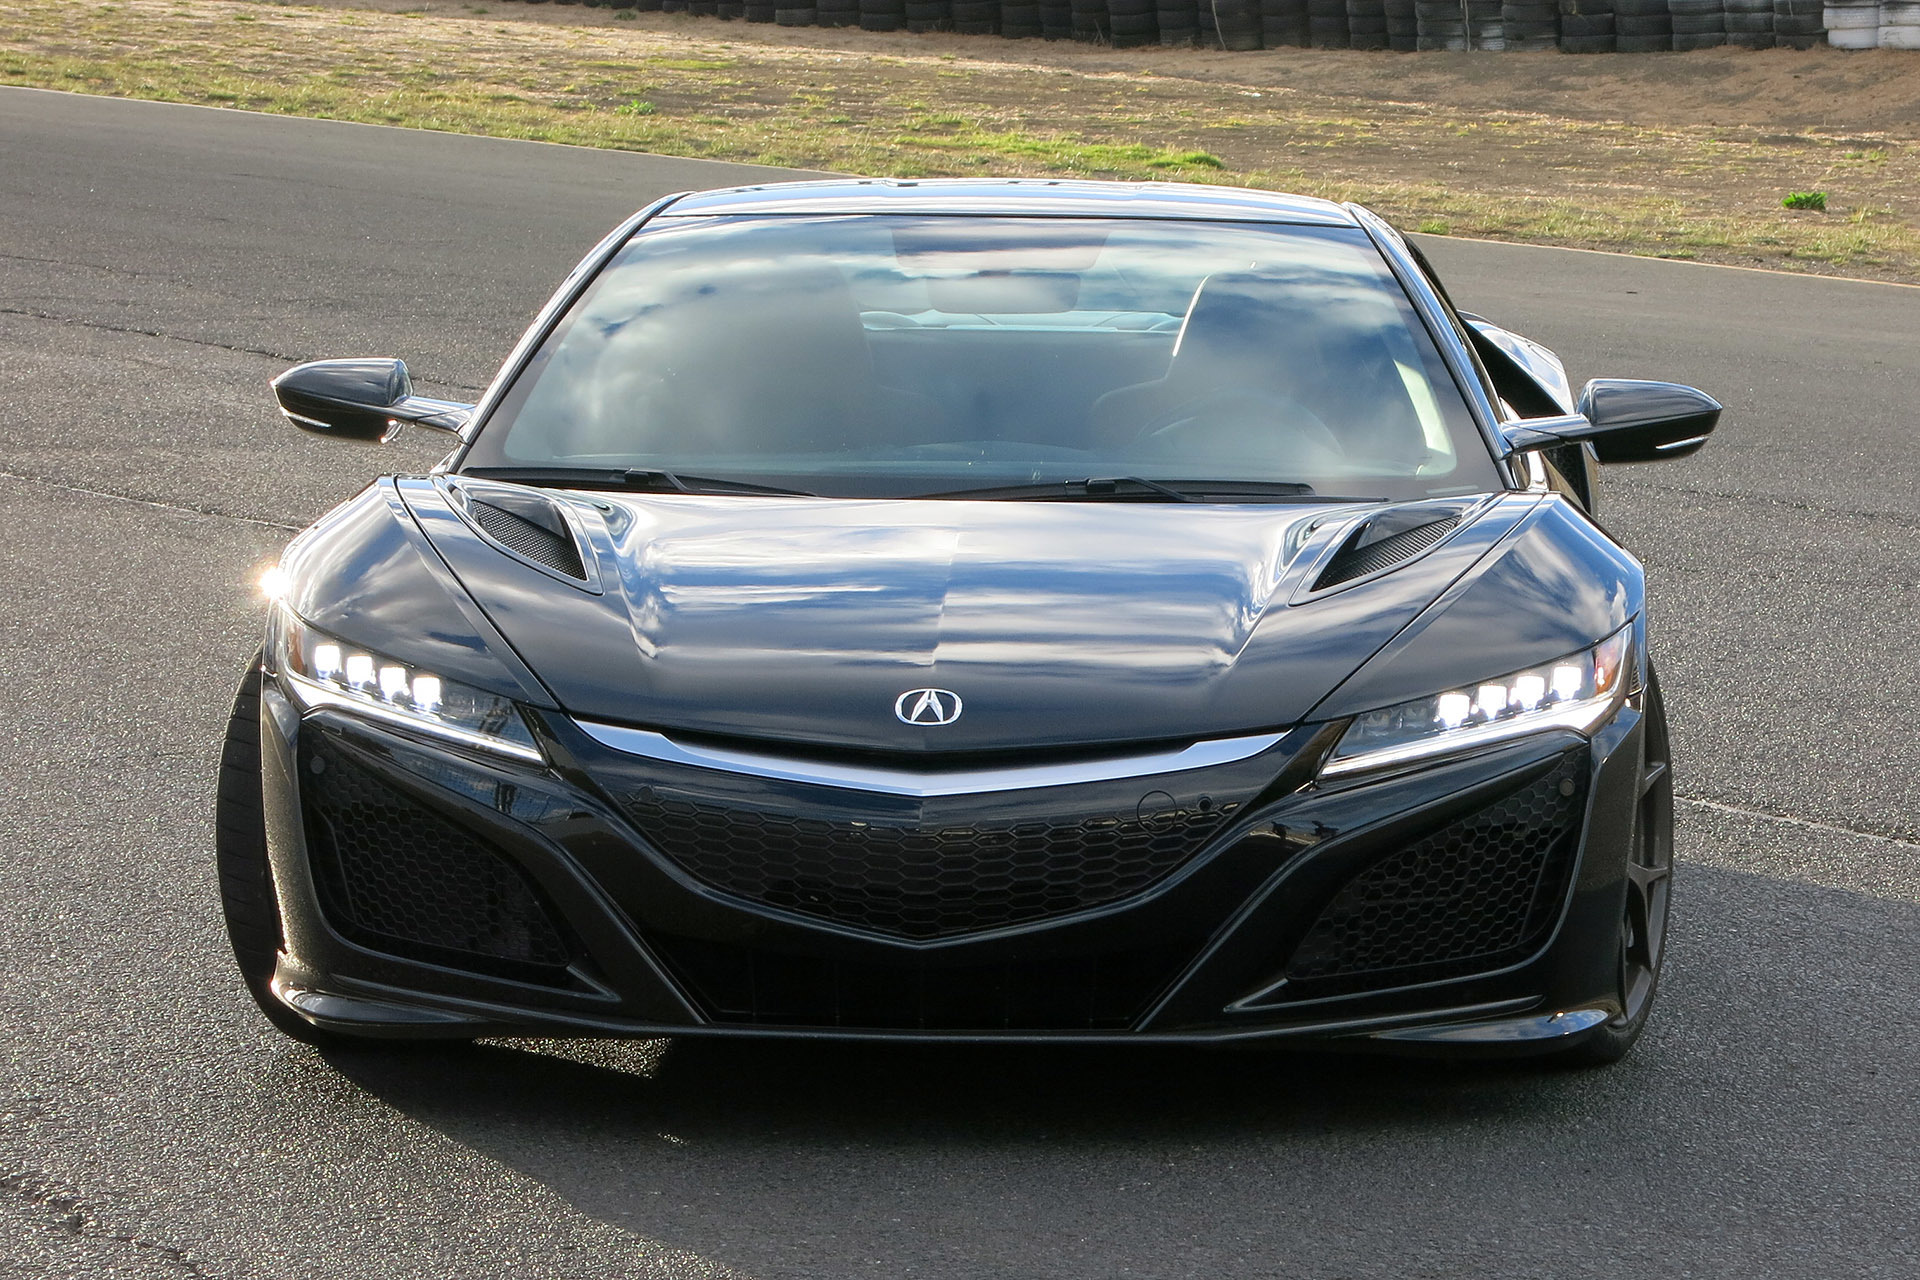 Extremely Complexed 2017 Acura NSX 4